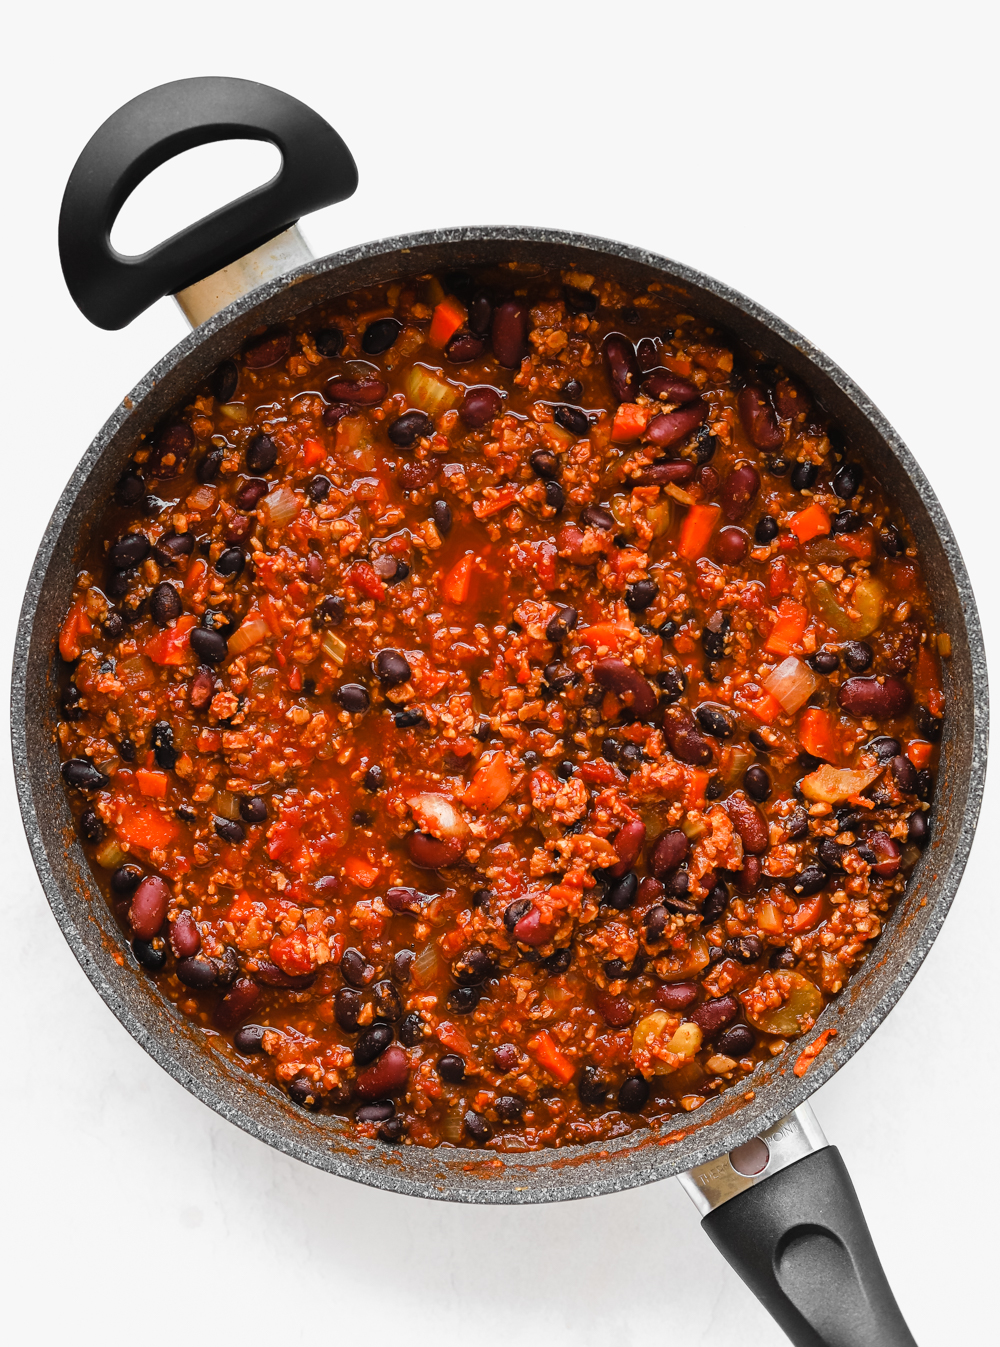 Big pot full of delicious meaty tvp chili with beans and vegetables.